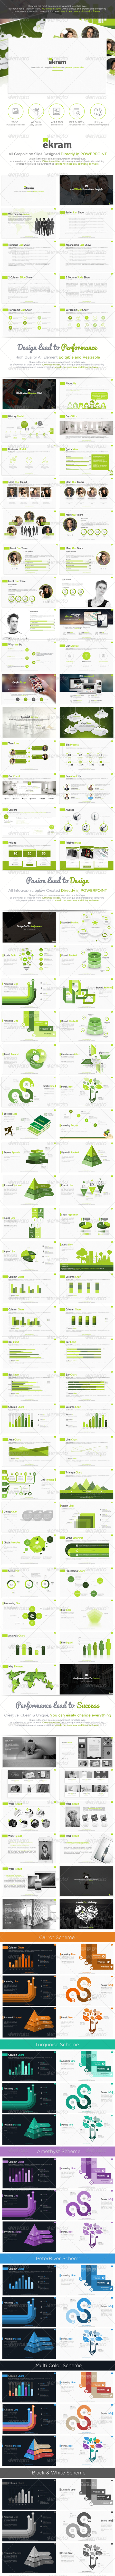 GraphicRiver Ekram The Most Complete PowerPoint Template 8054681